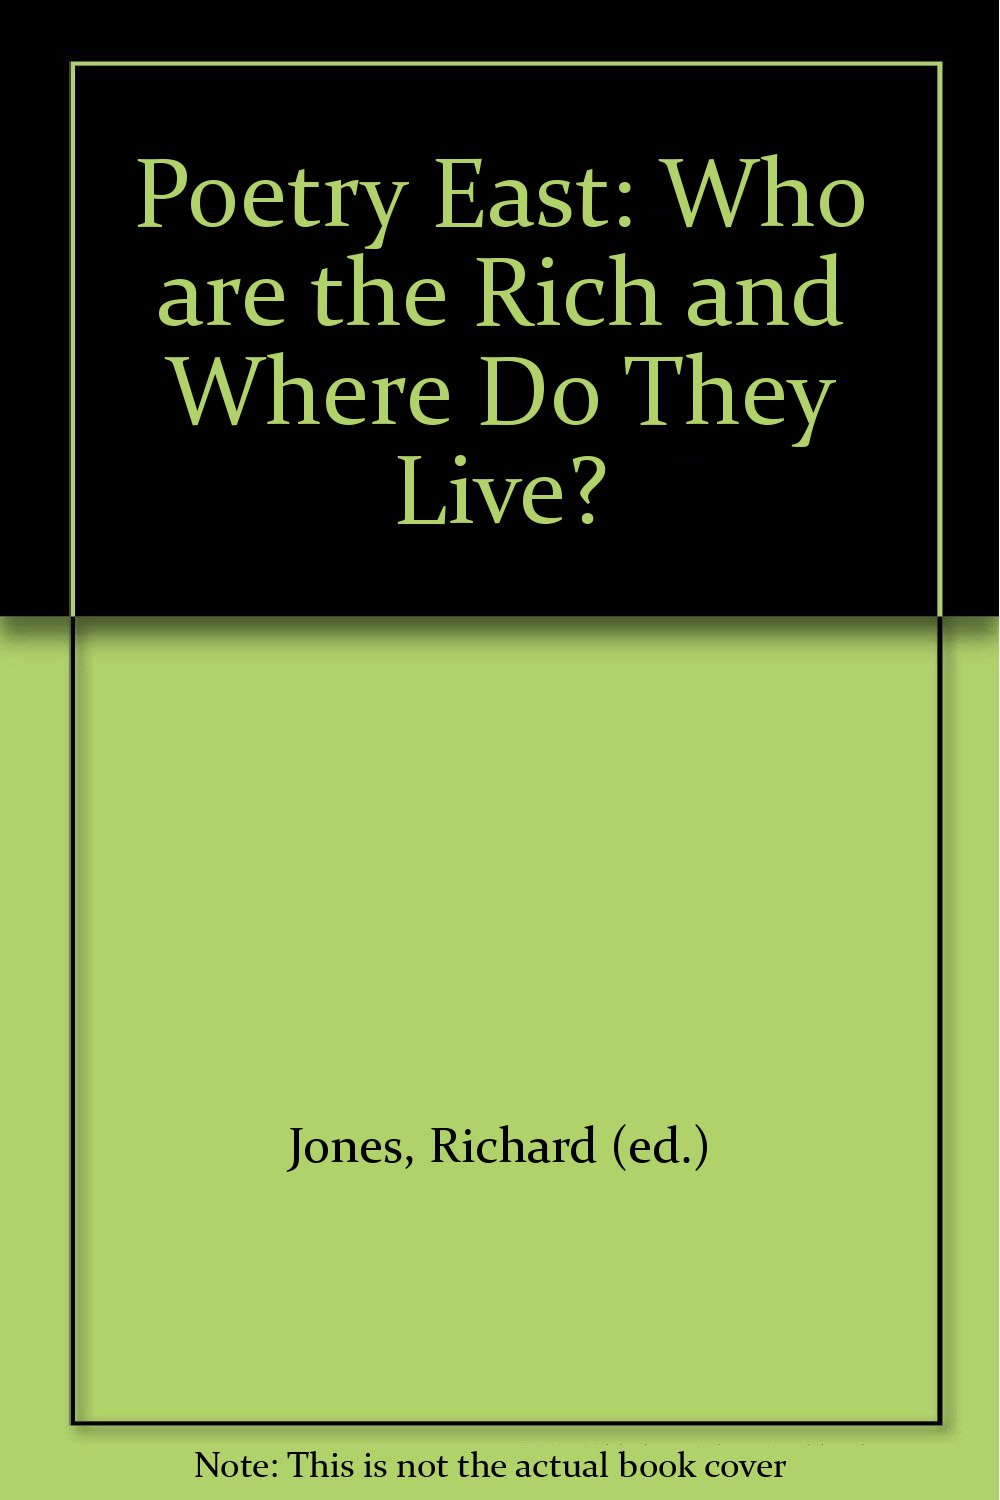 who_are_the_rich